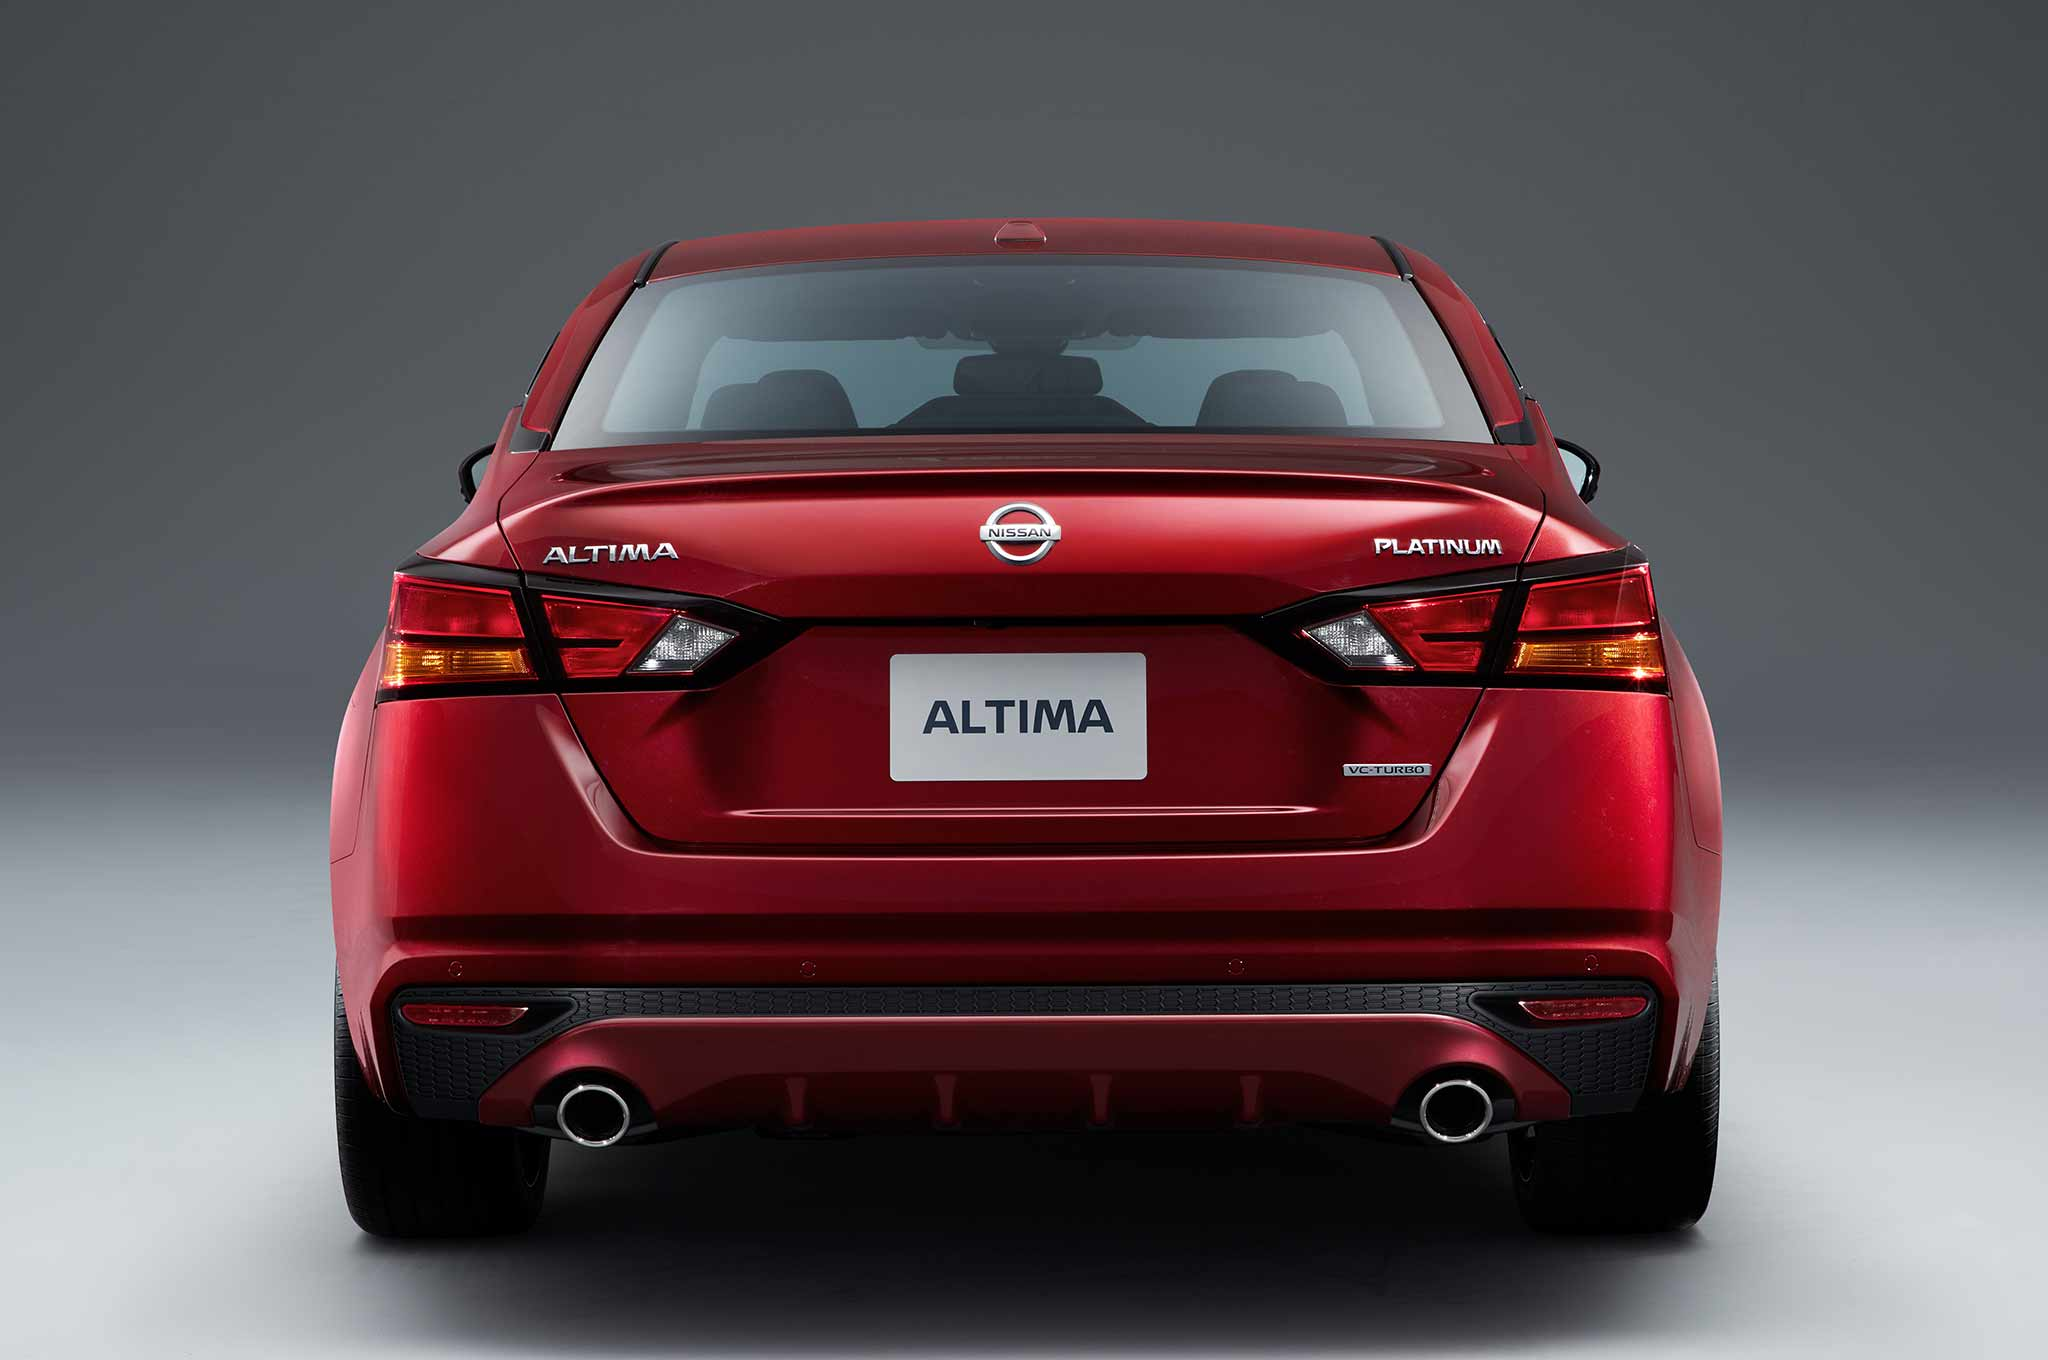 82 New 2019 Nissan Altima Platinum Vc Turbo Release Date by 2019 Nissan Altima Platinum Vc Turbo